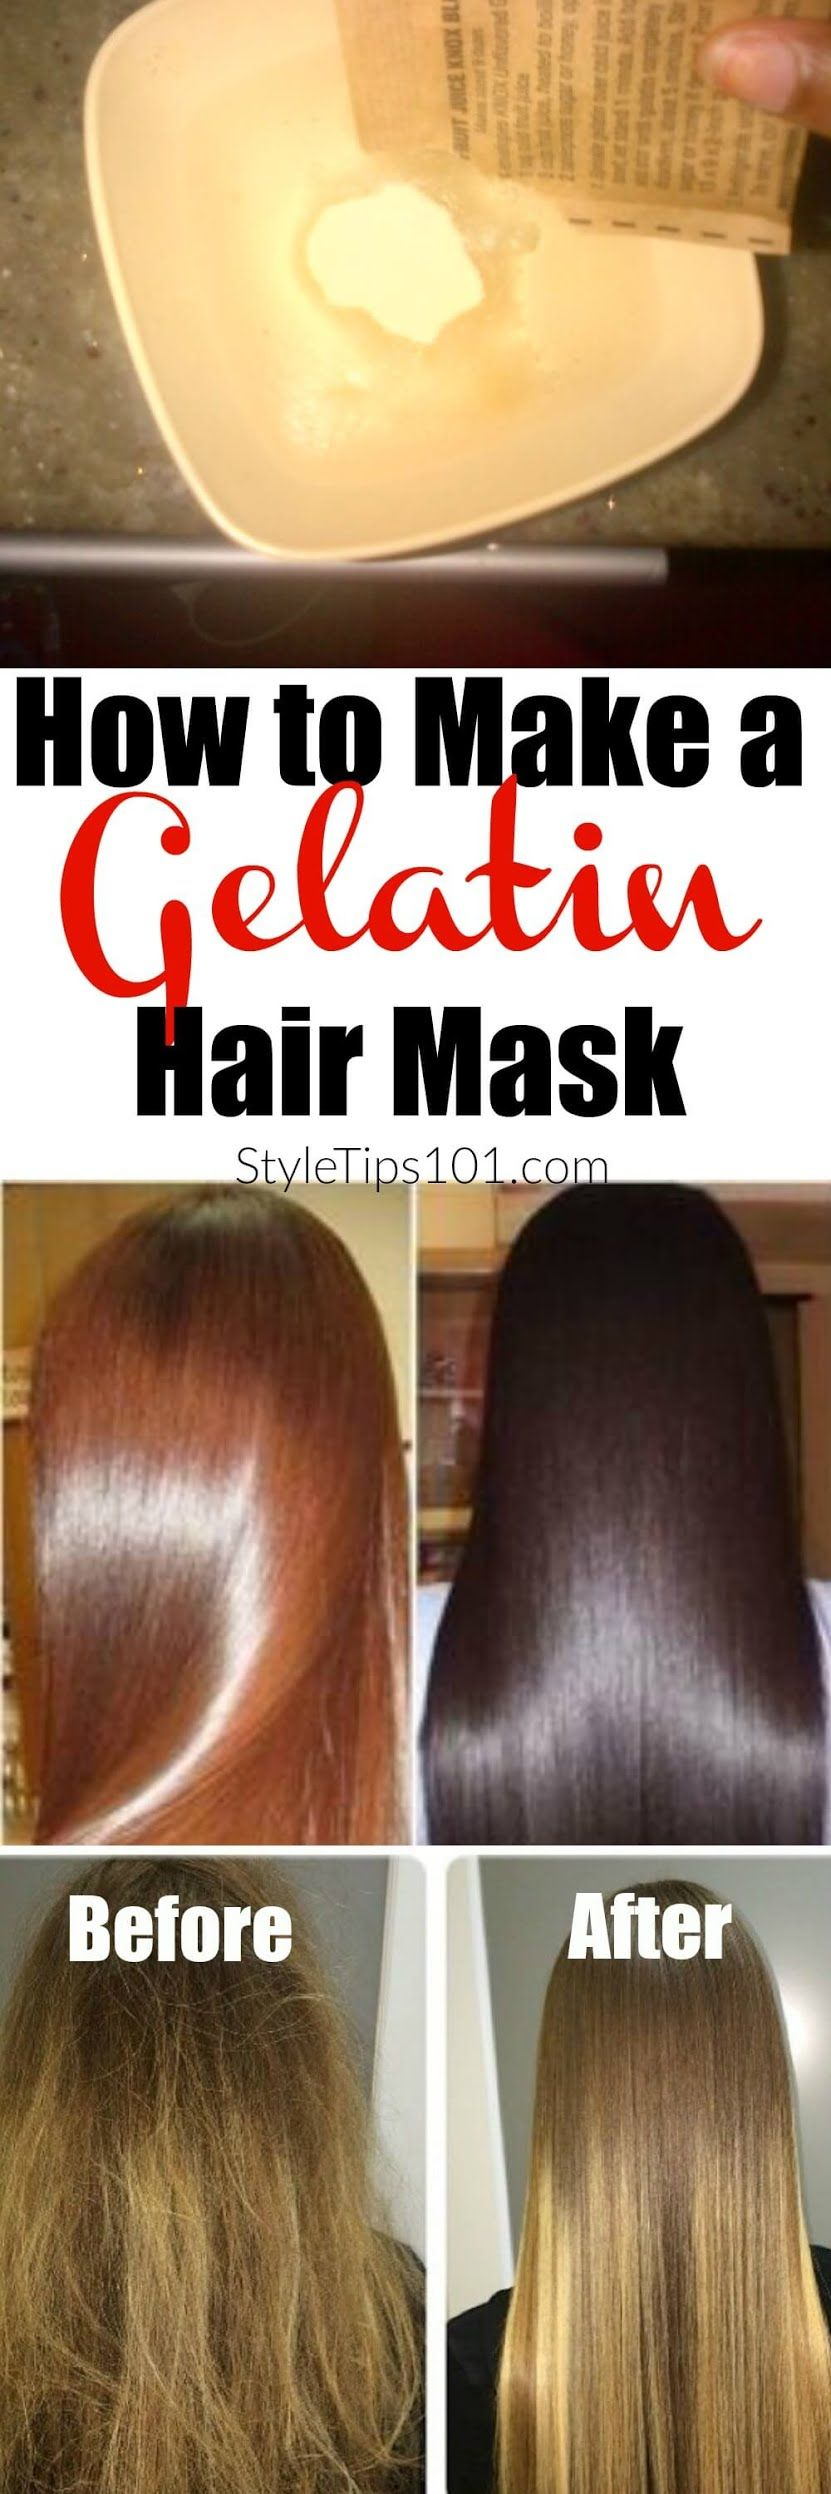 How To Make A Gelatin Hair Mask 1 2 Cup Water Packet Knox Unflavored